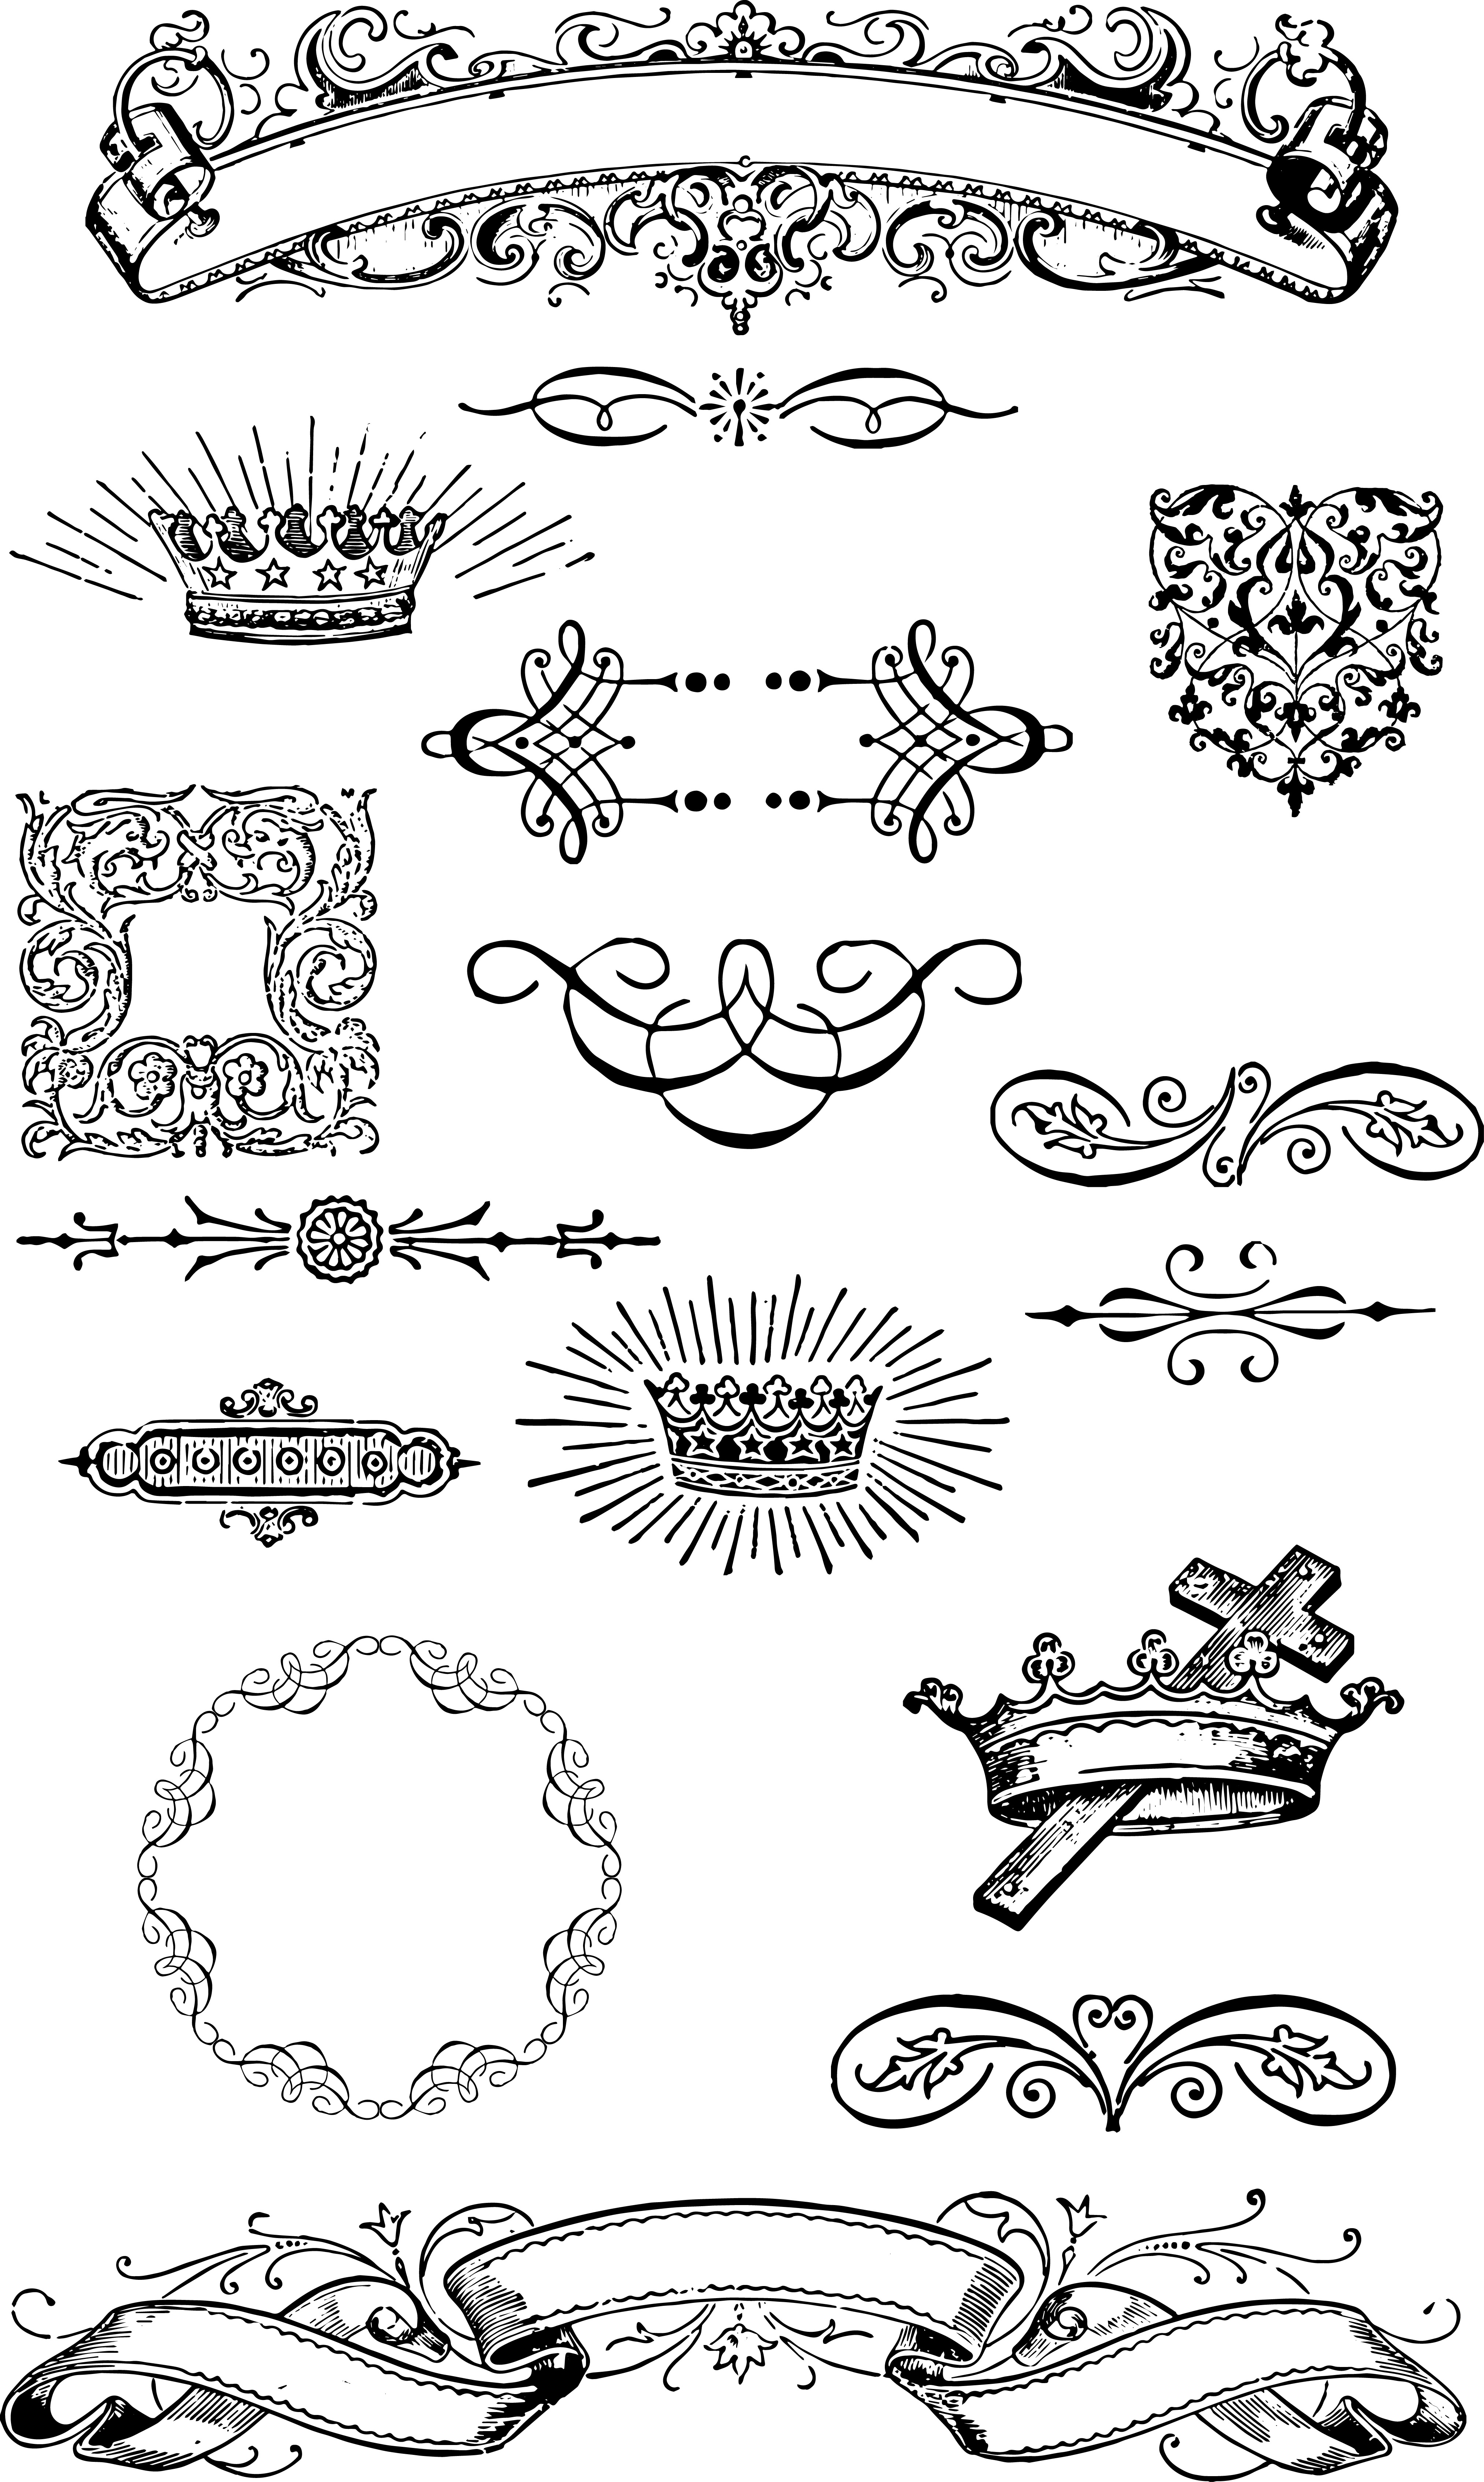 Free Vintage Grunge Vector And Clip Art Ornaments For T